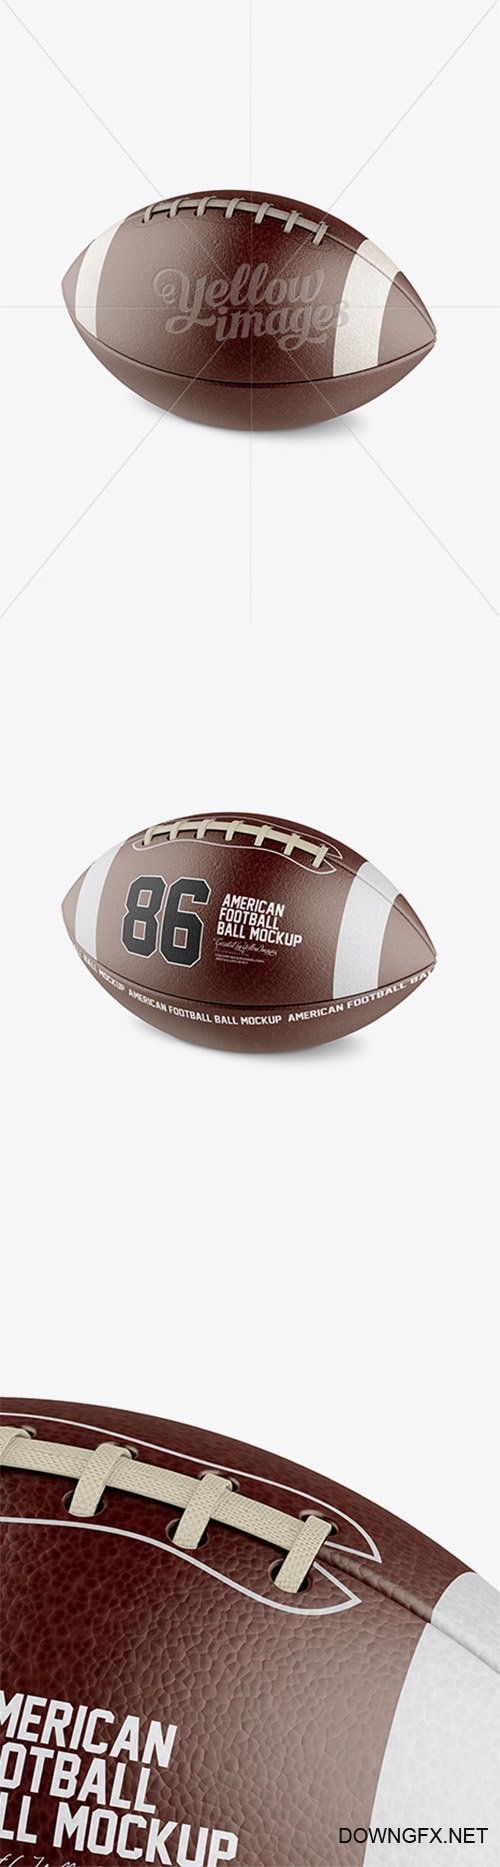 American Football Ball Mockup - Halfside View 15288 TIF